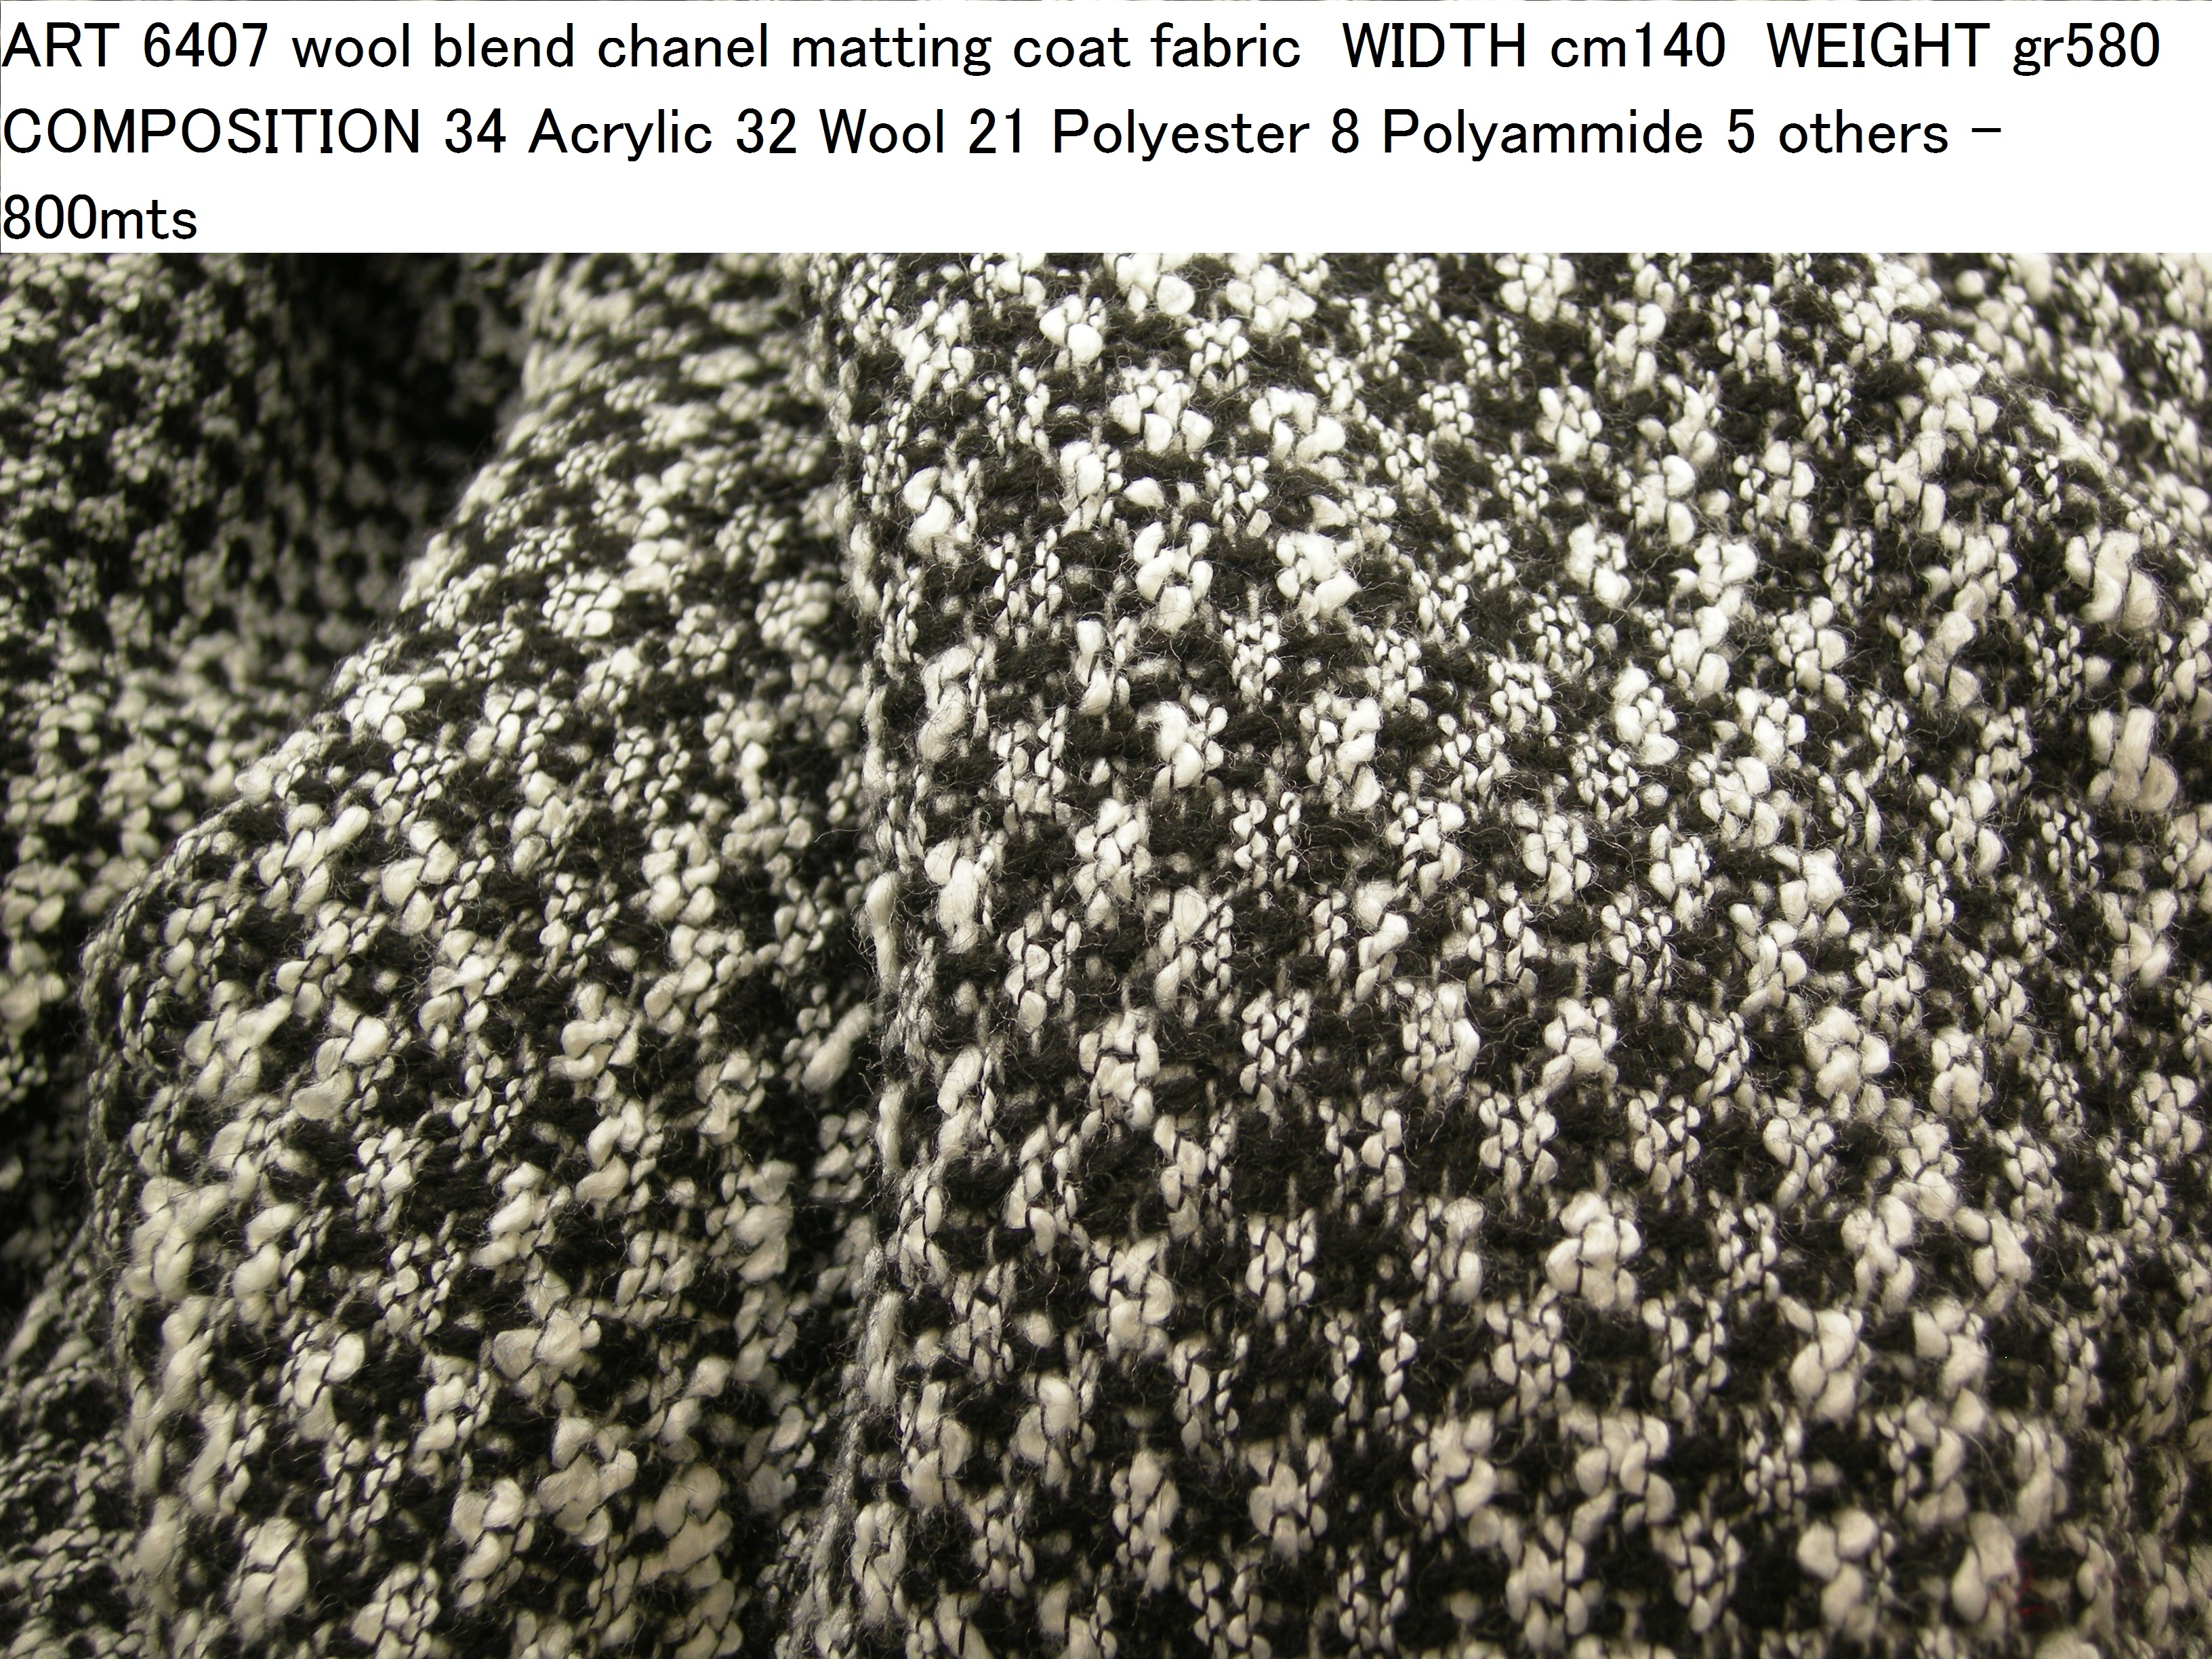 ART 6407 wool blend chanel matting coat fabric WIDTH cm140 WEIGHT gr580 COMPOSITION 34 Acrylic 32 Wool 21 Polyester 8 Polyammide 5 others - 800mts